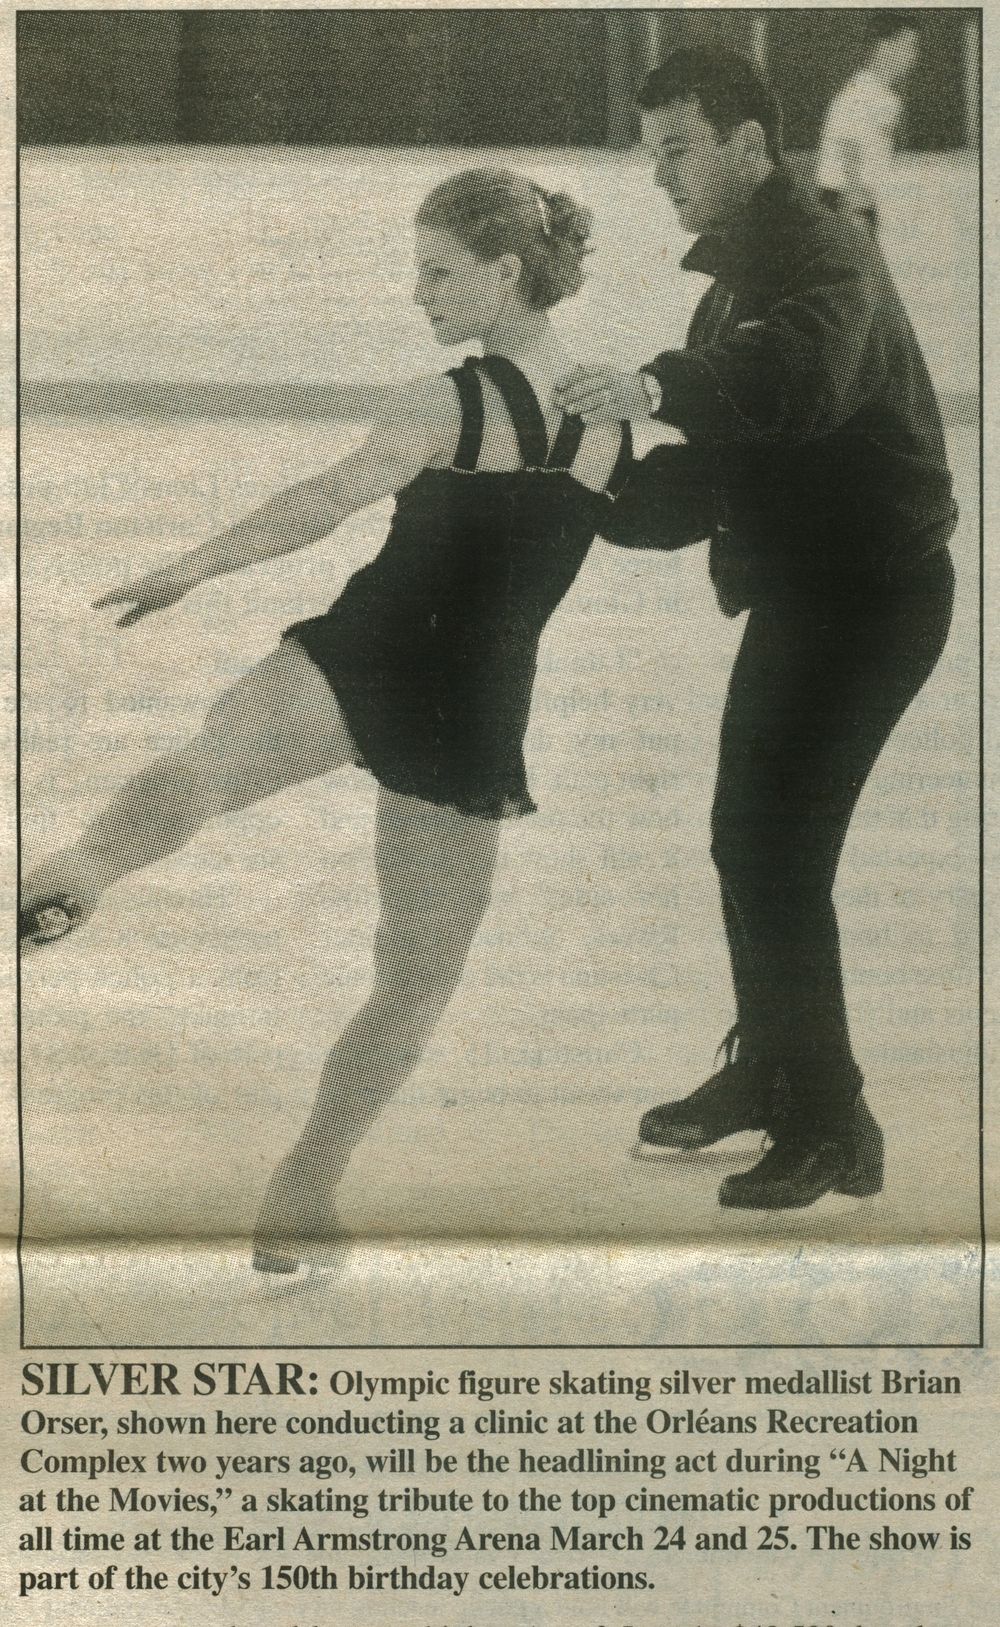 Stefanie Partridge and Brian Orser Feb. 12, 2000